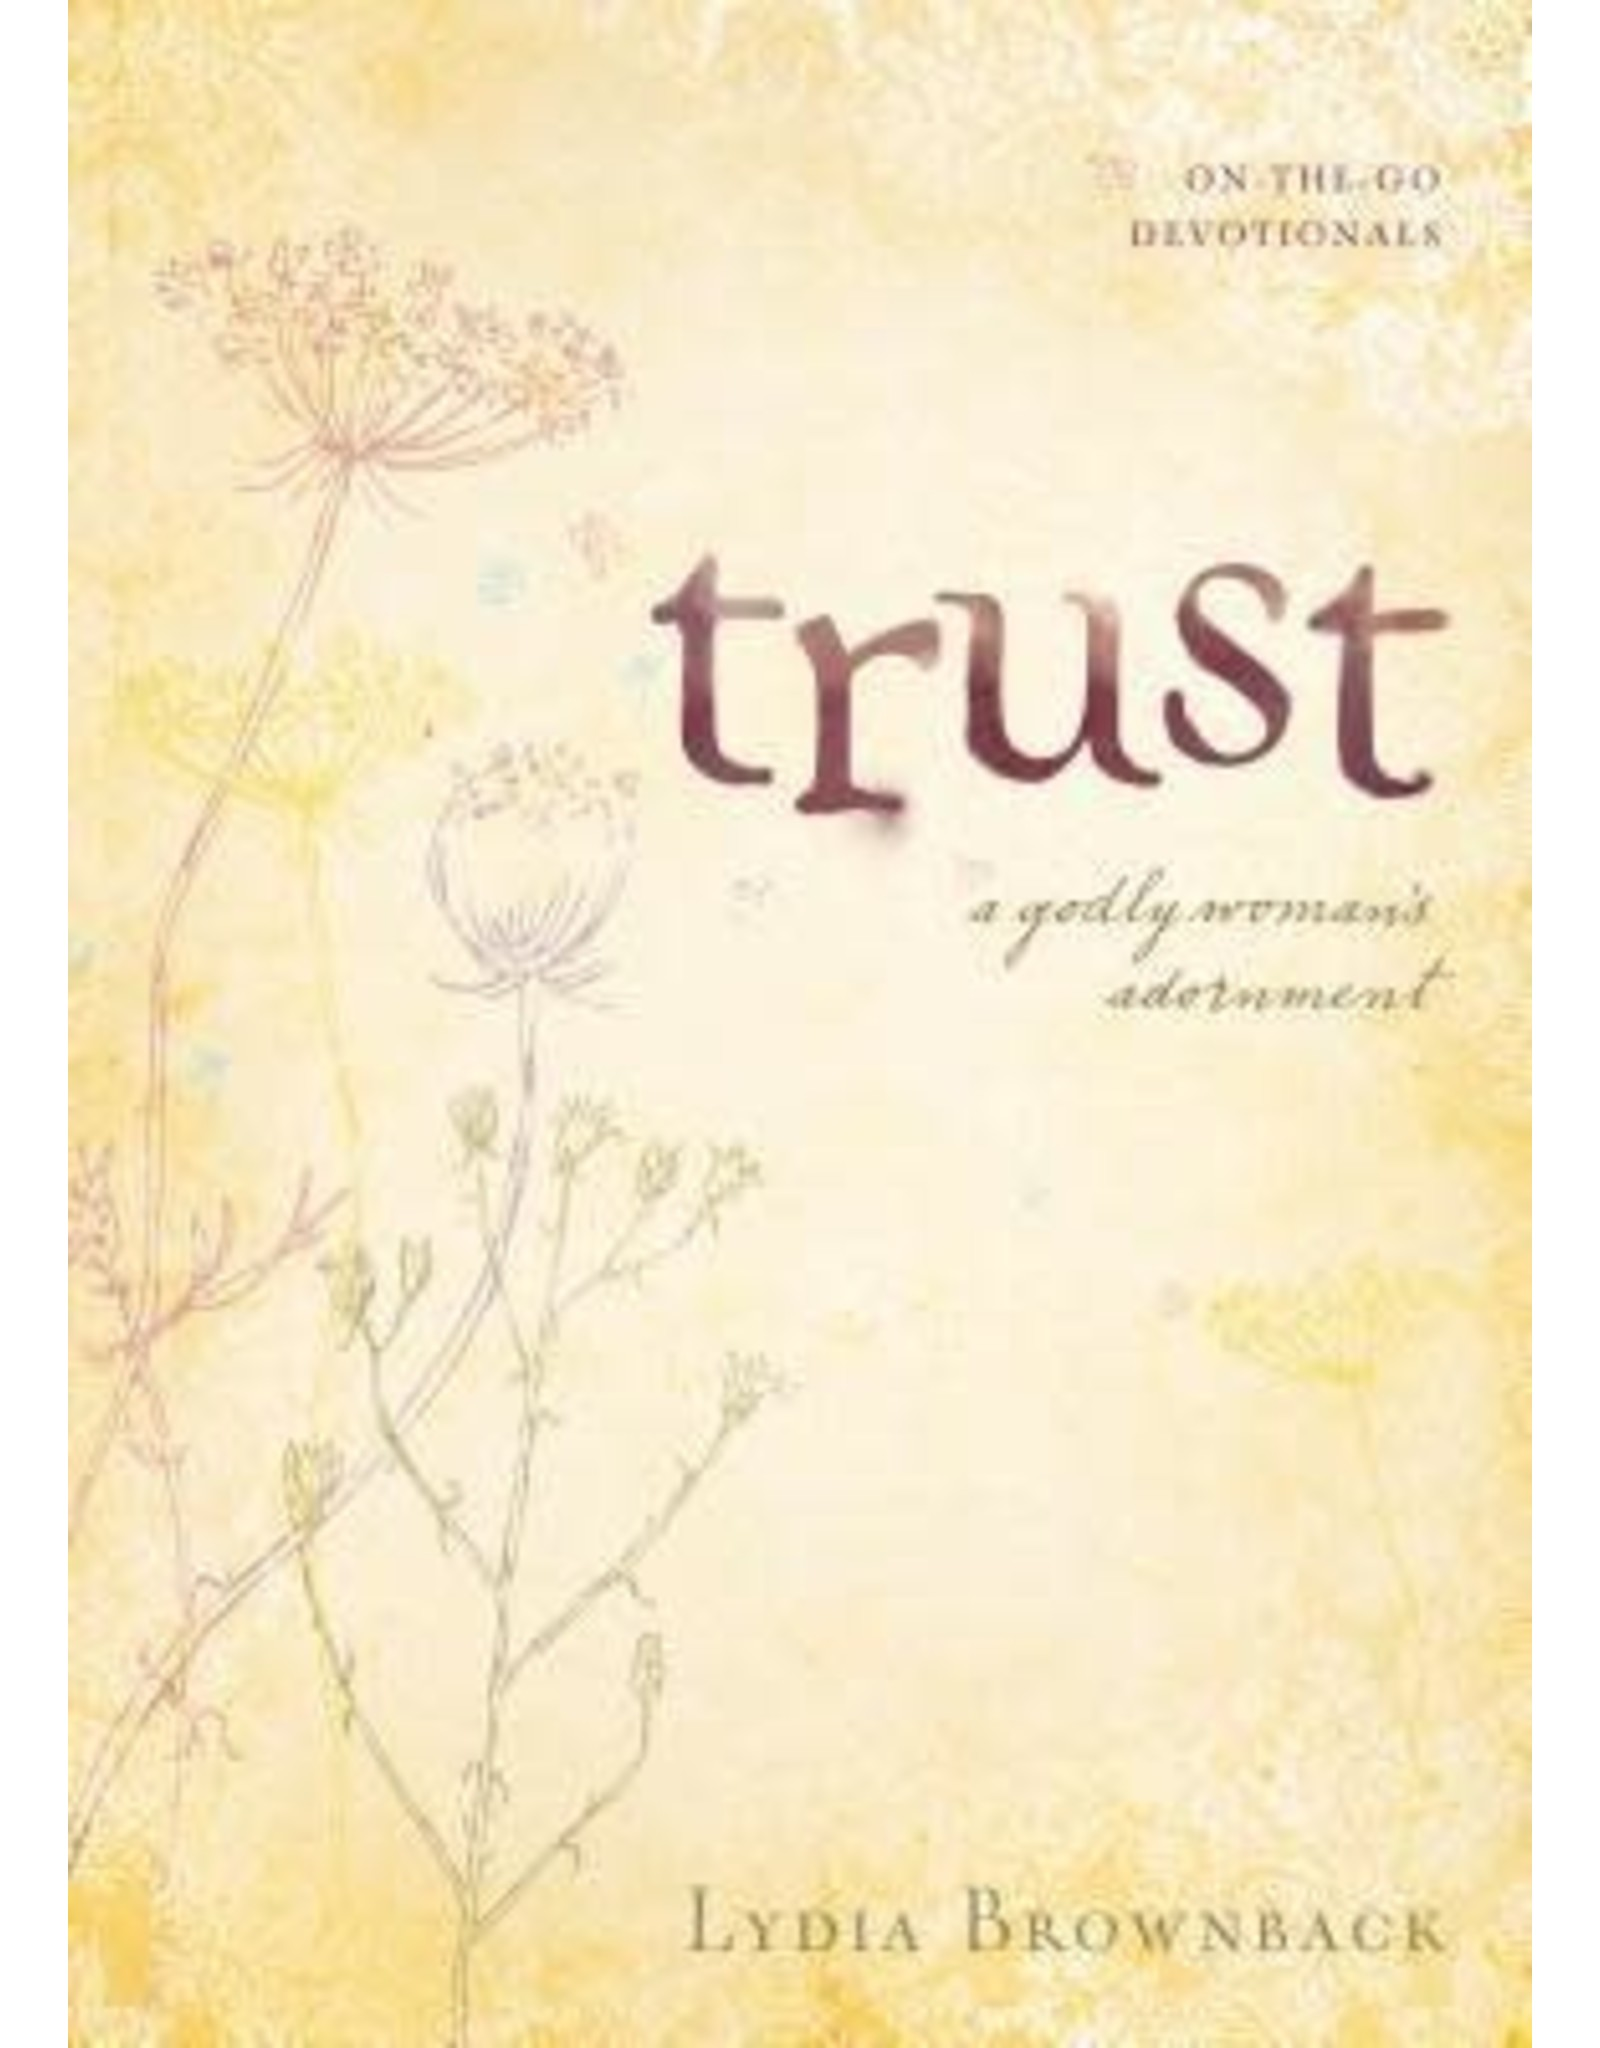 Brownback Trust: A Godly Woman's Adornment